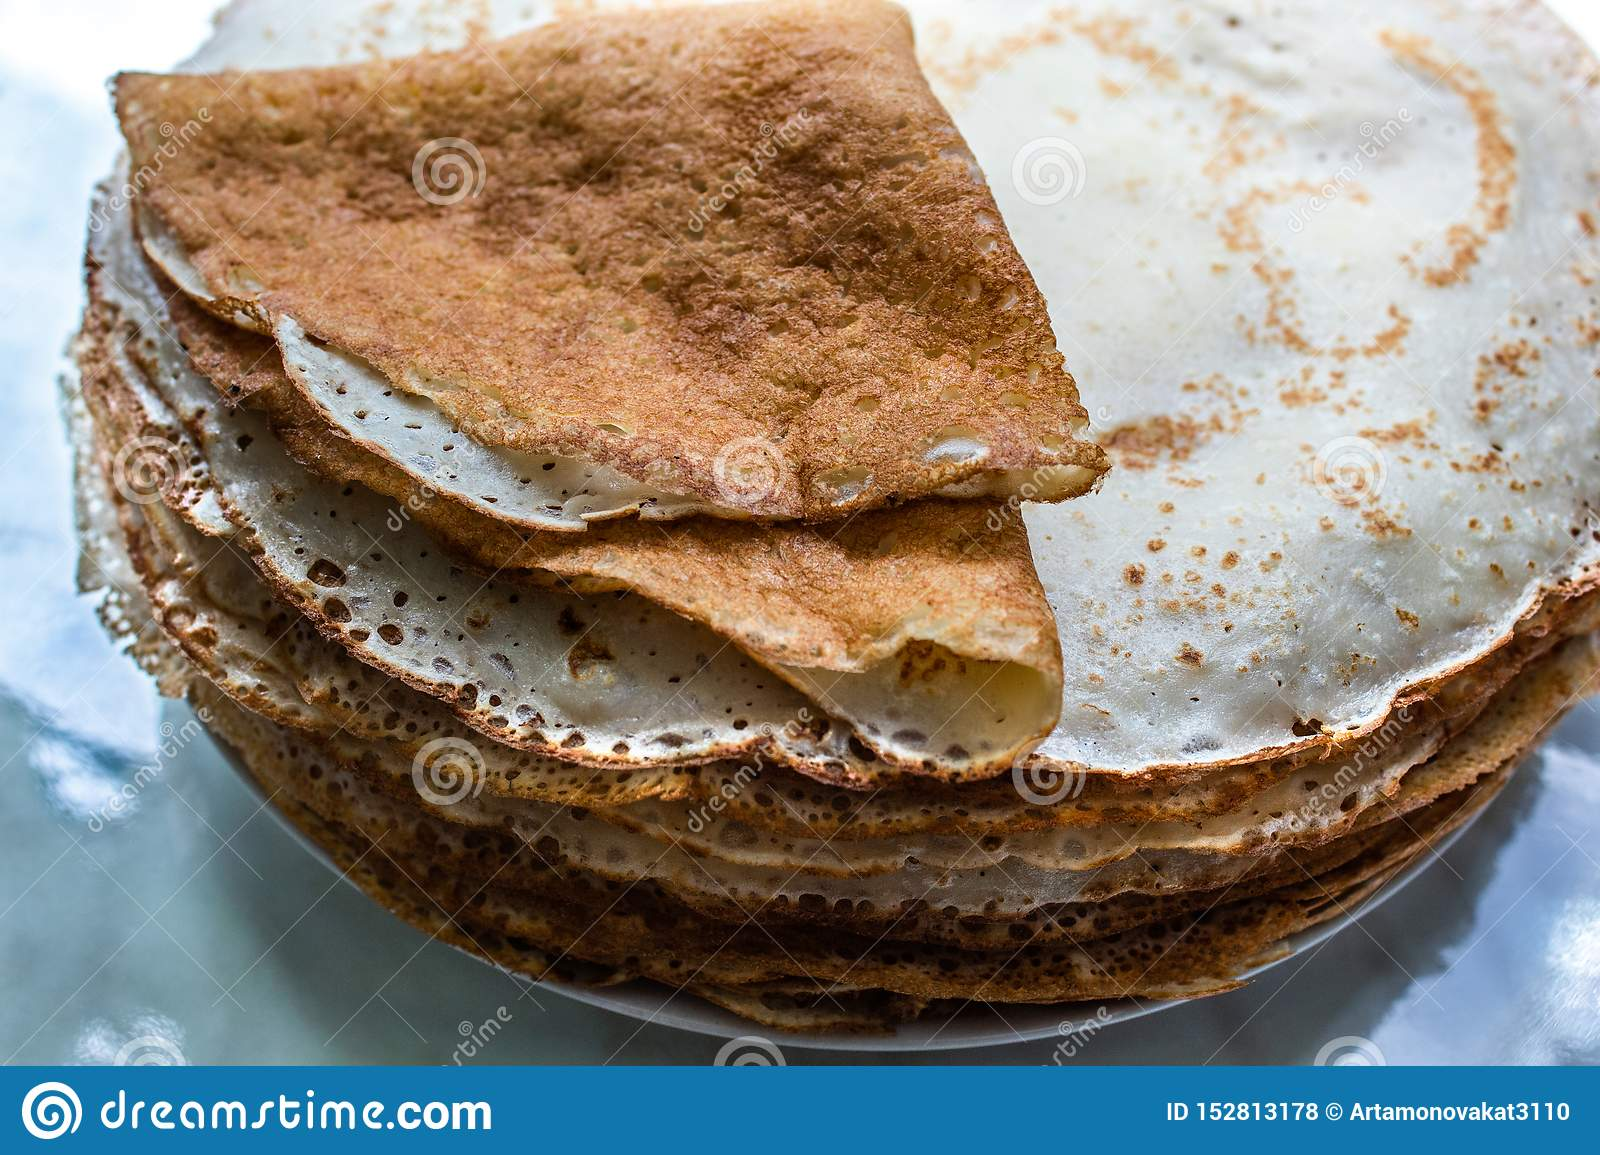 Fried pancakes. Close up. Copy space.